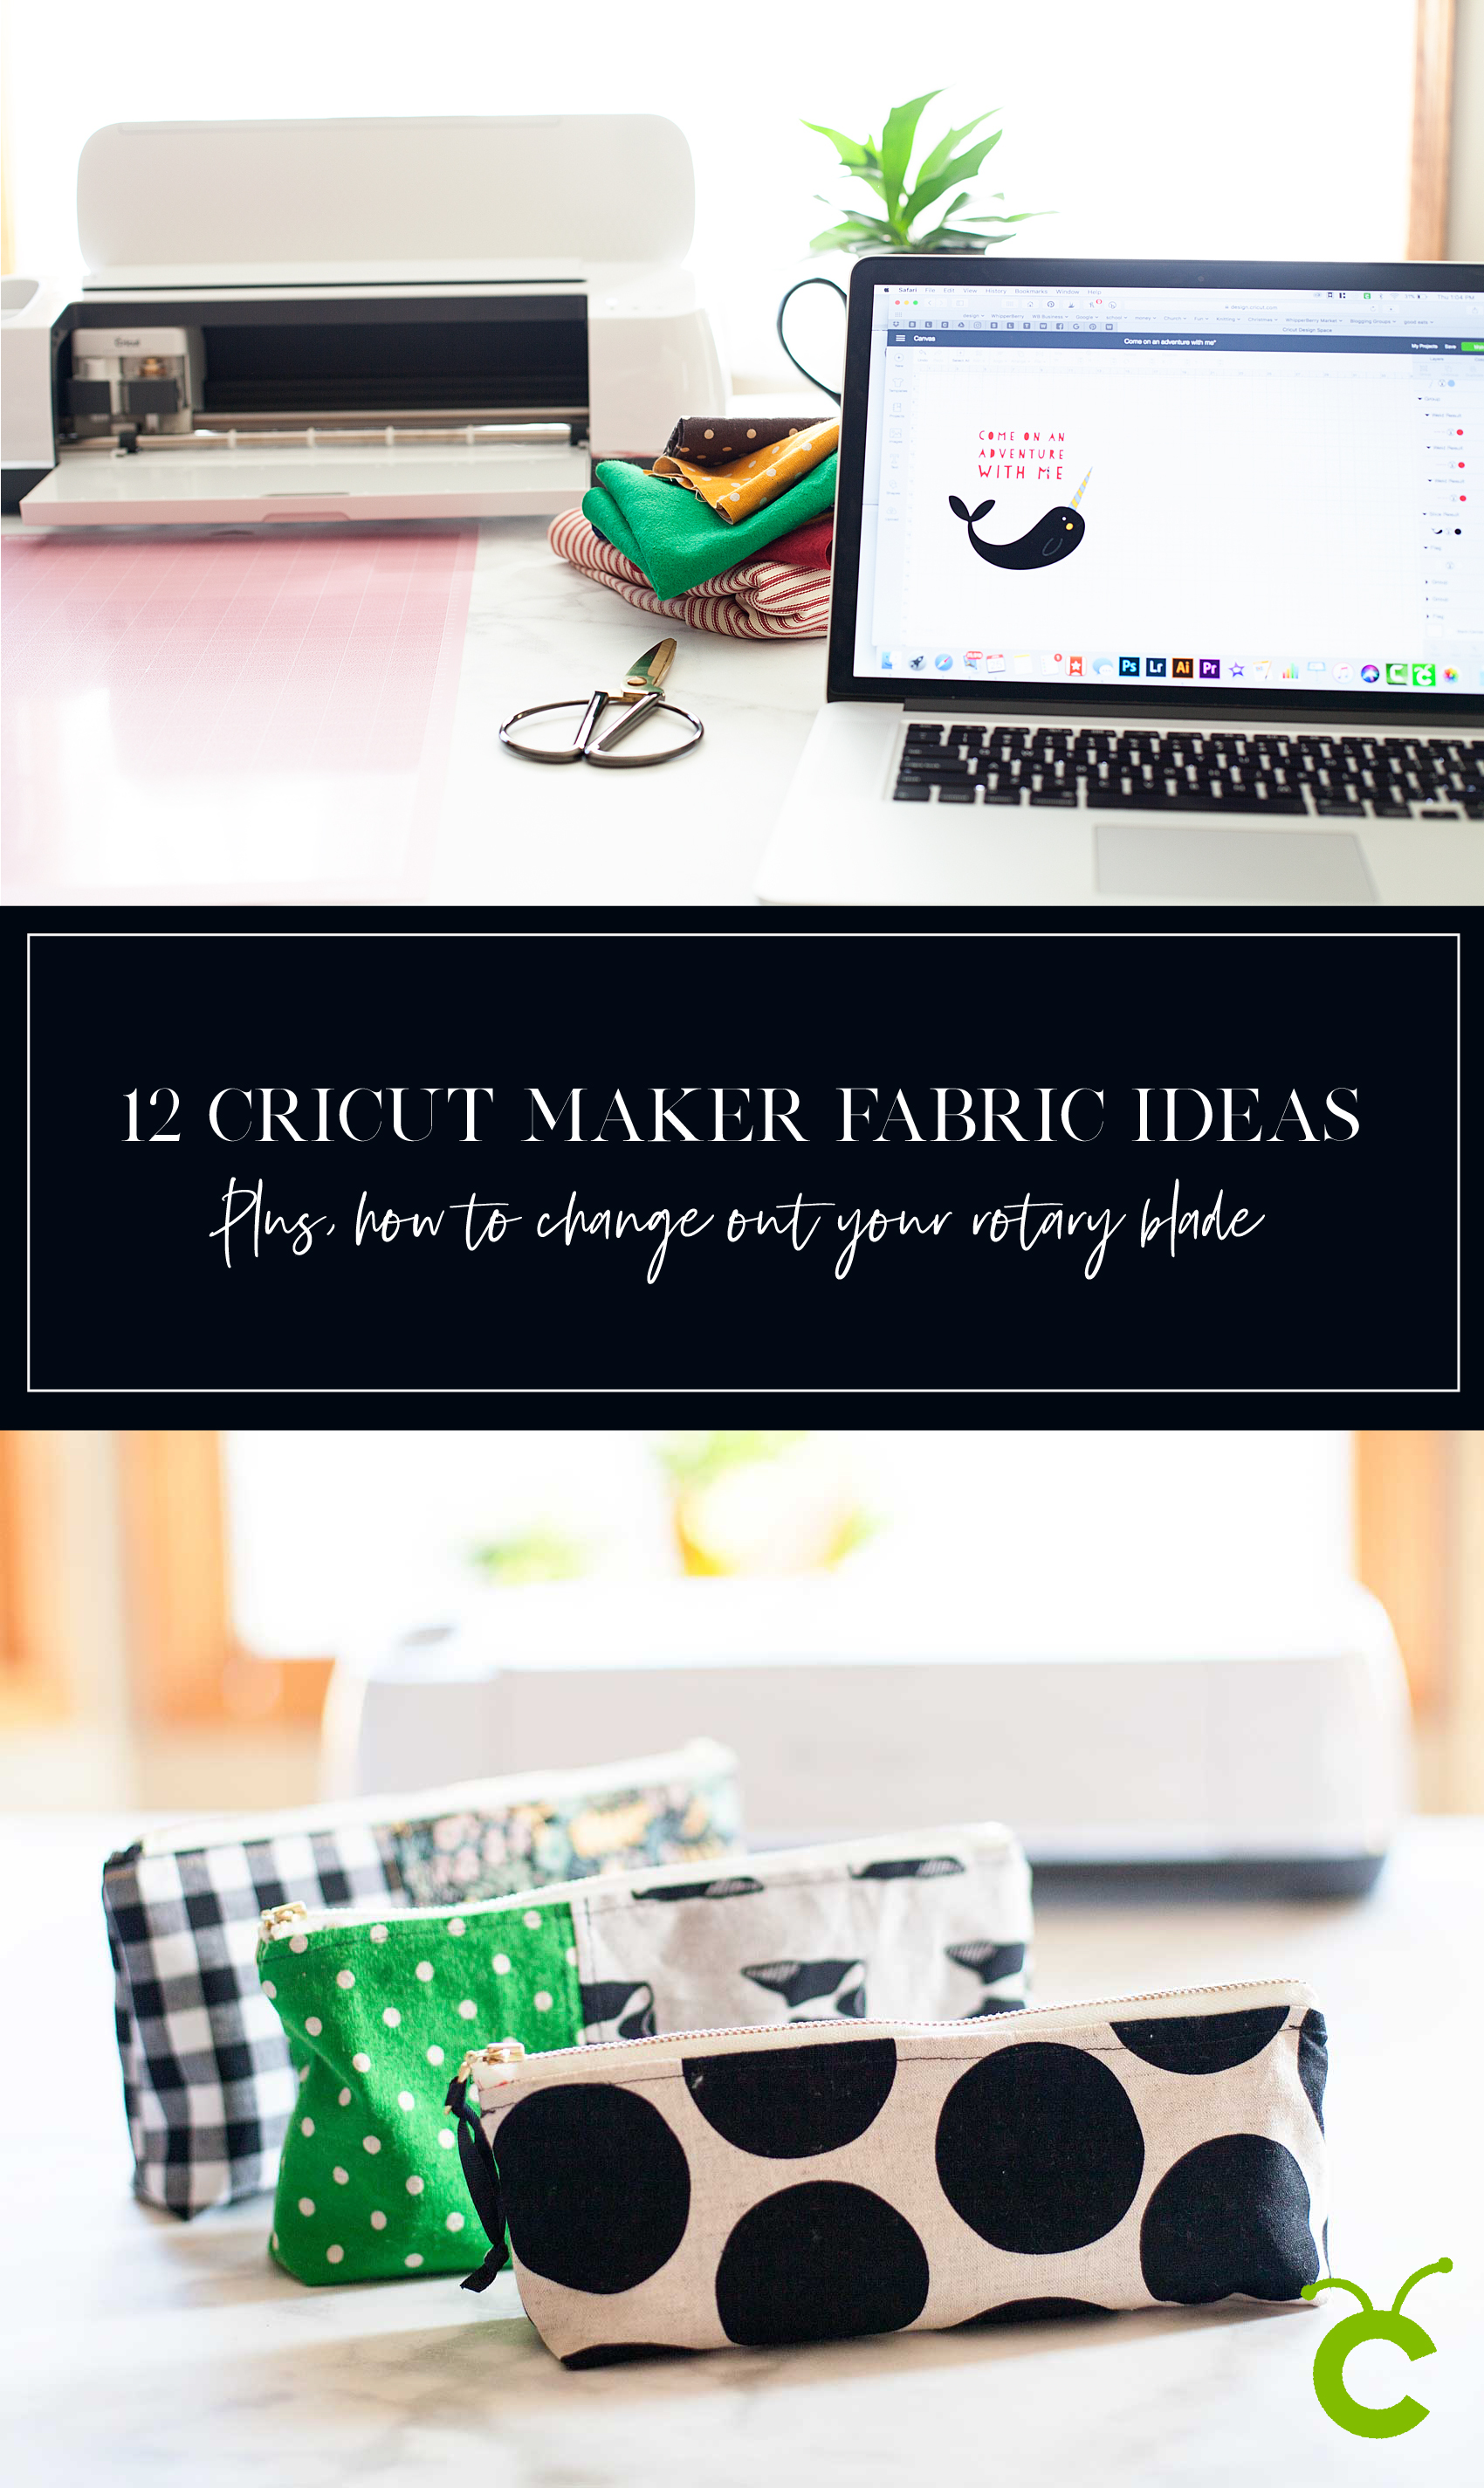 12 Cricut Maker Fabric Projects PLUS + For every Cricut Maker user, there comes a time when you will need to change out your rotary blade. This is something that is relatively new to the Cricut world, and is super easy to do following the proper instructions.